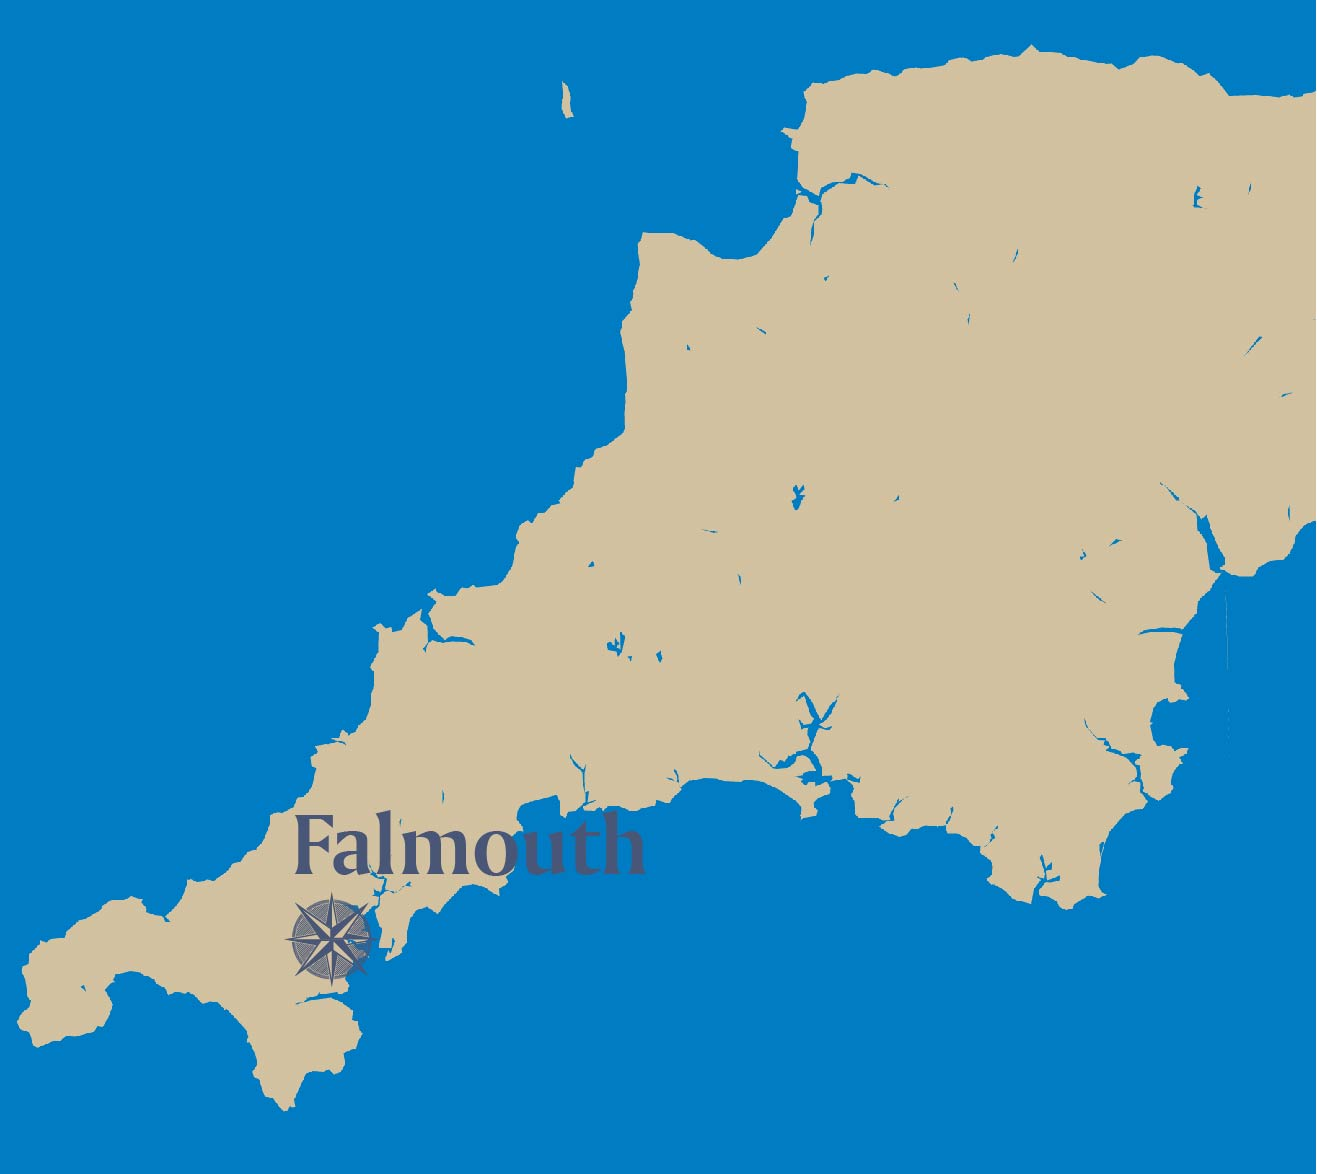 Falmouth-map